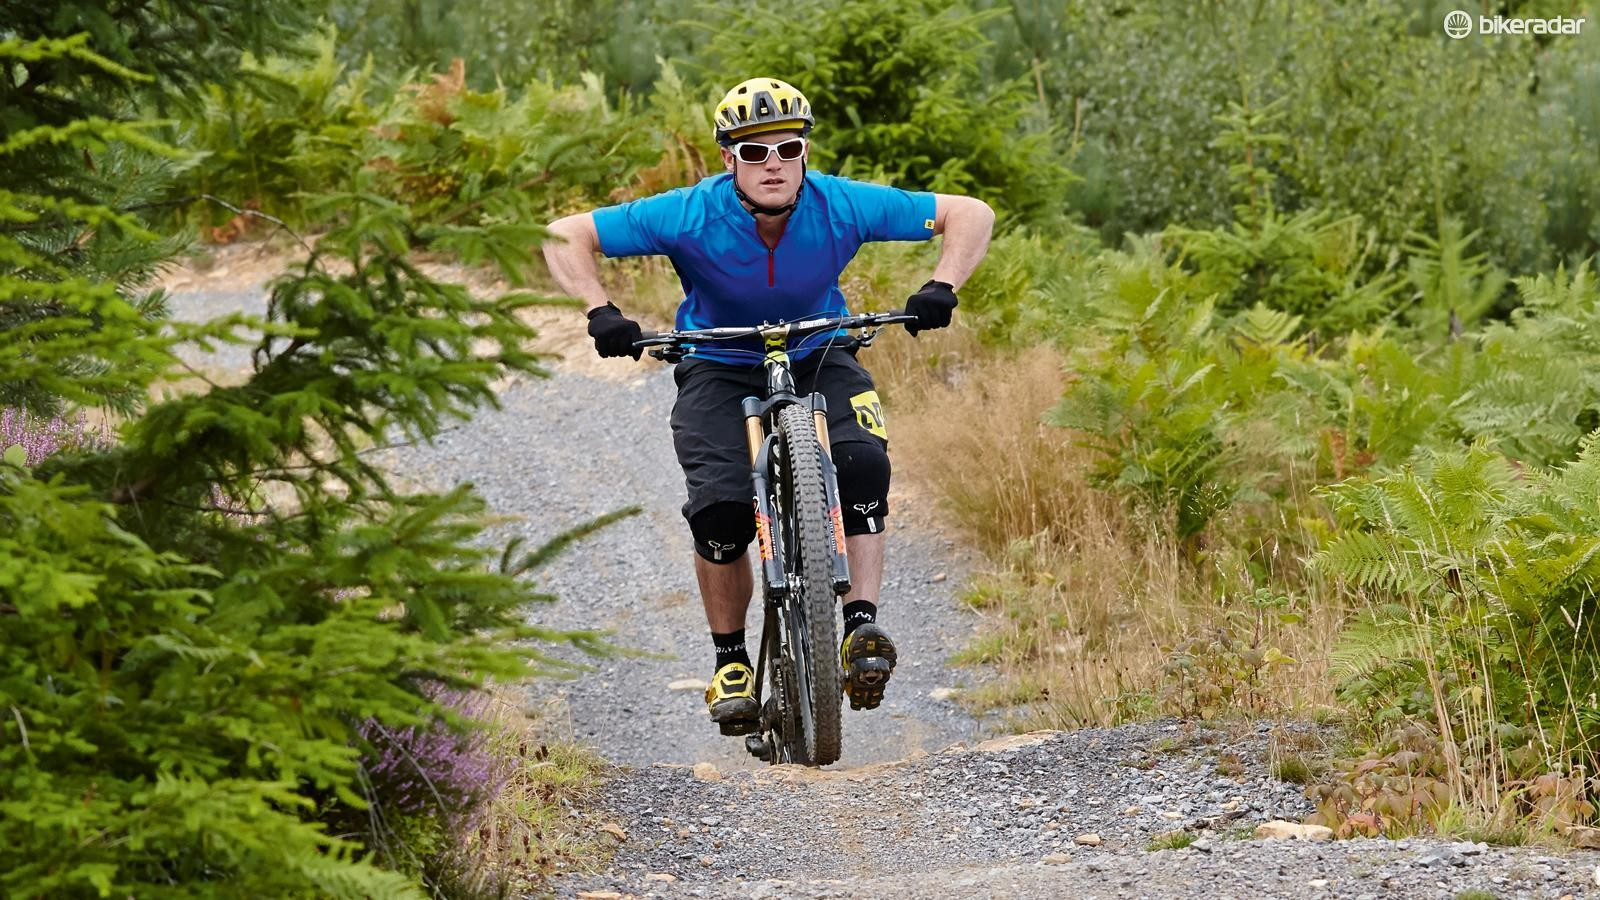 2. Absorb the upward movement of your bike